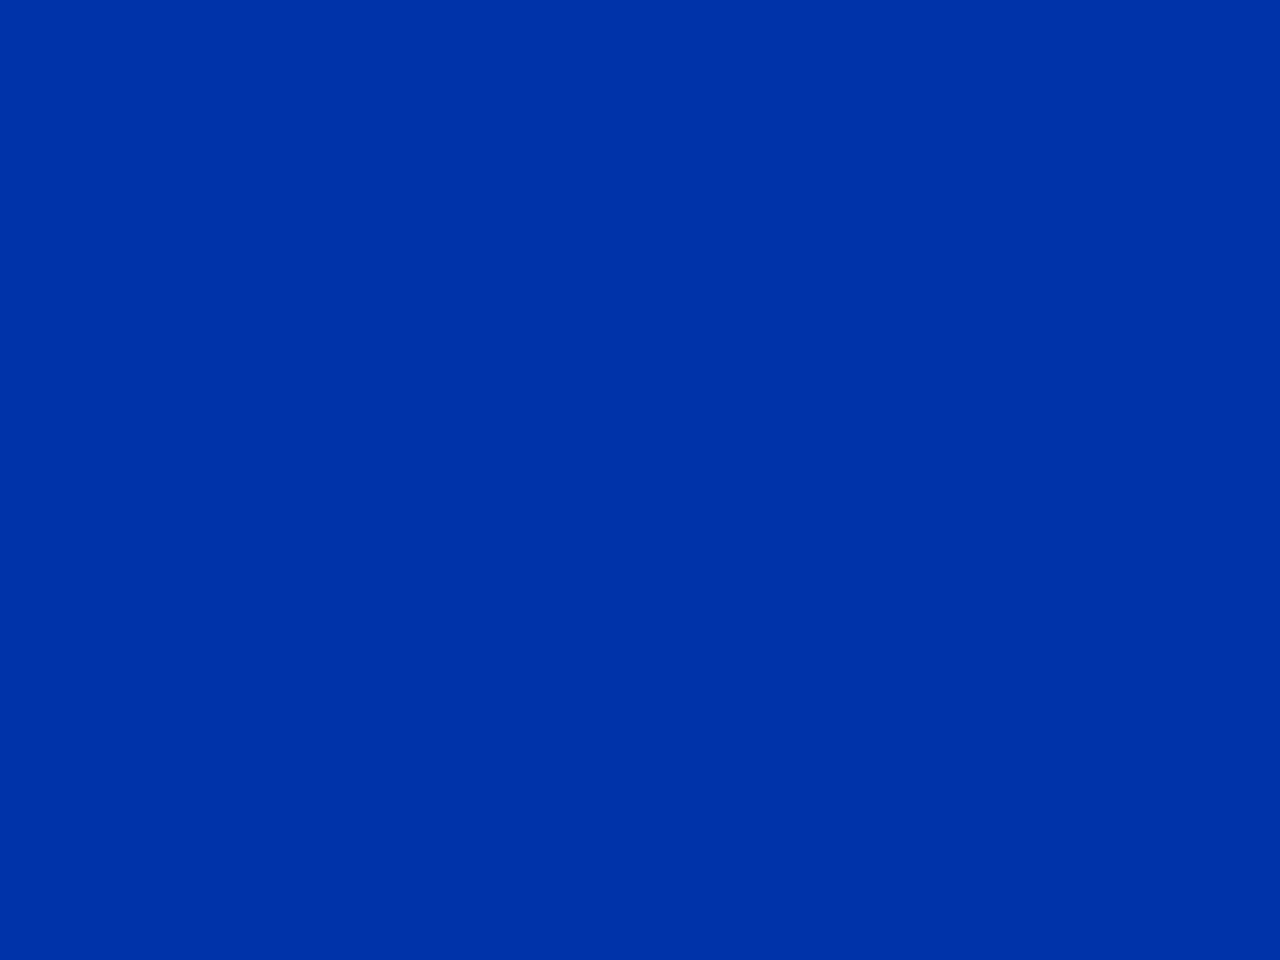 1280x960 UA Blue Solid Color Background